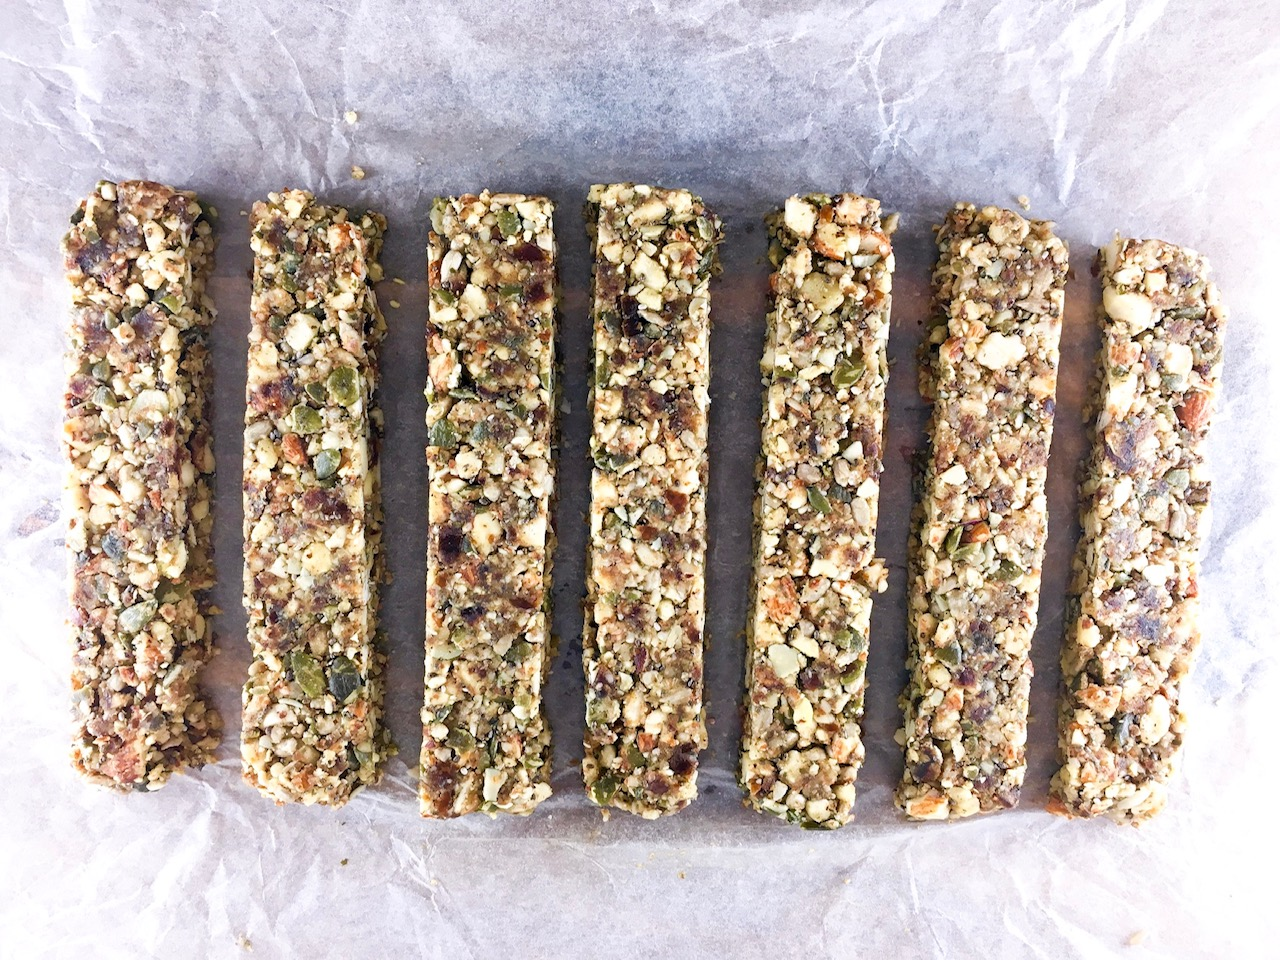 Raw Paleo Seed & Nut Bars